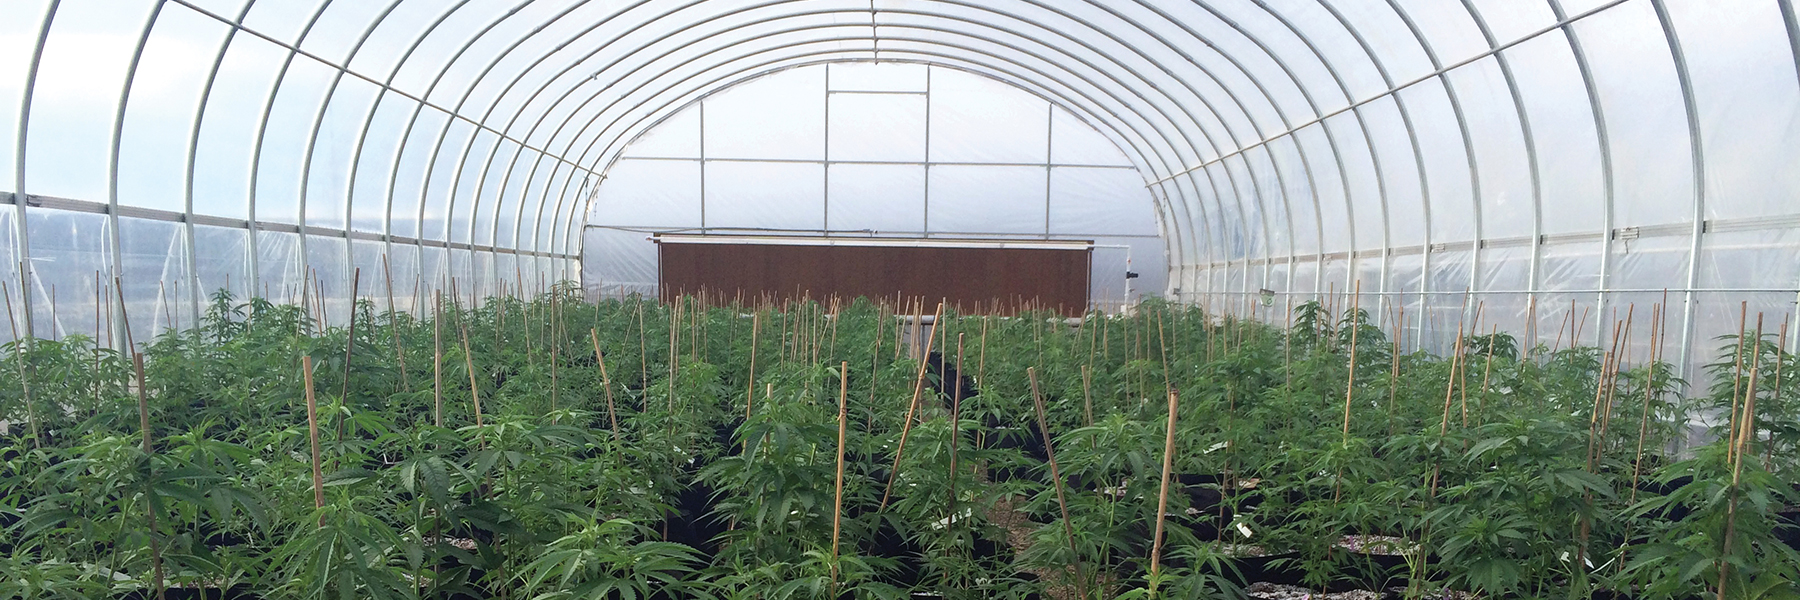 cannabis hoop house greenhouse